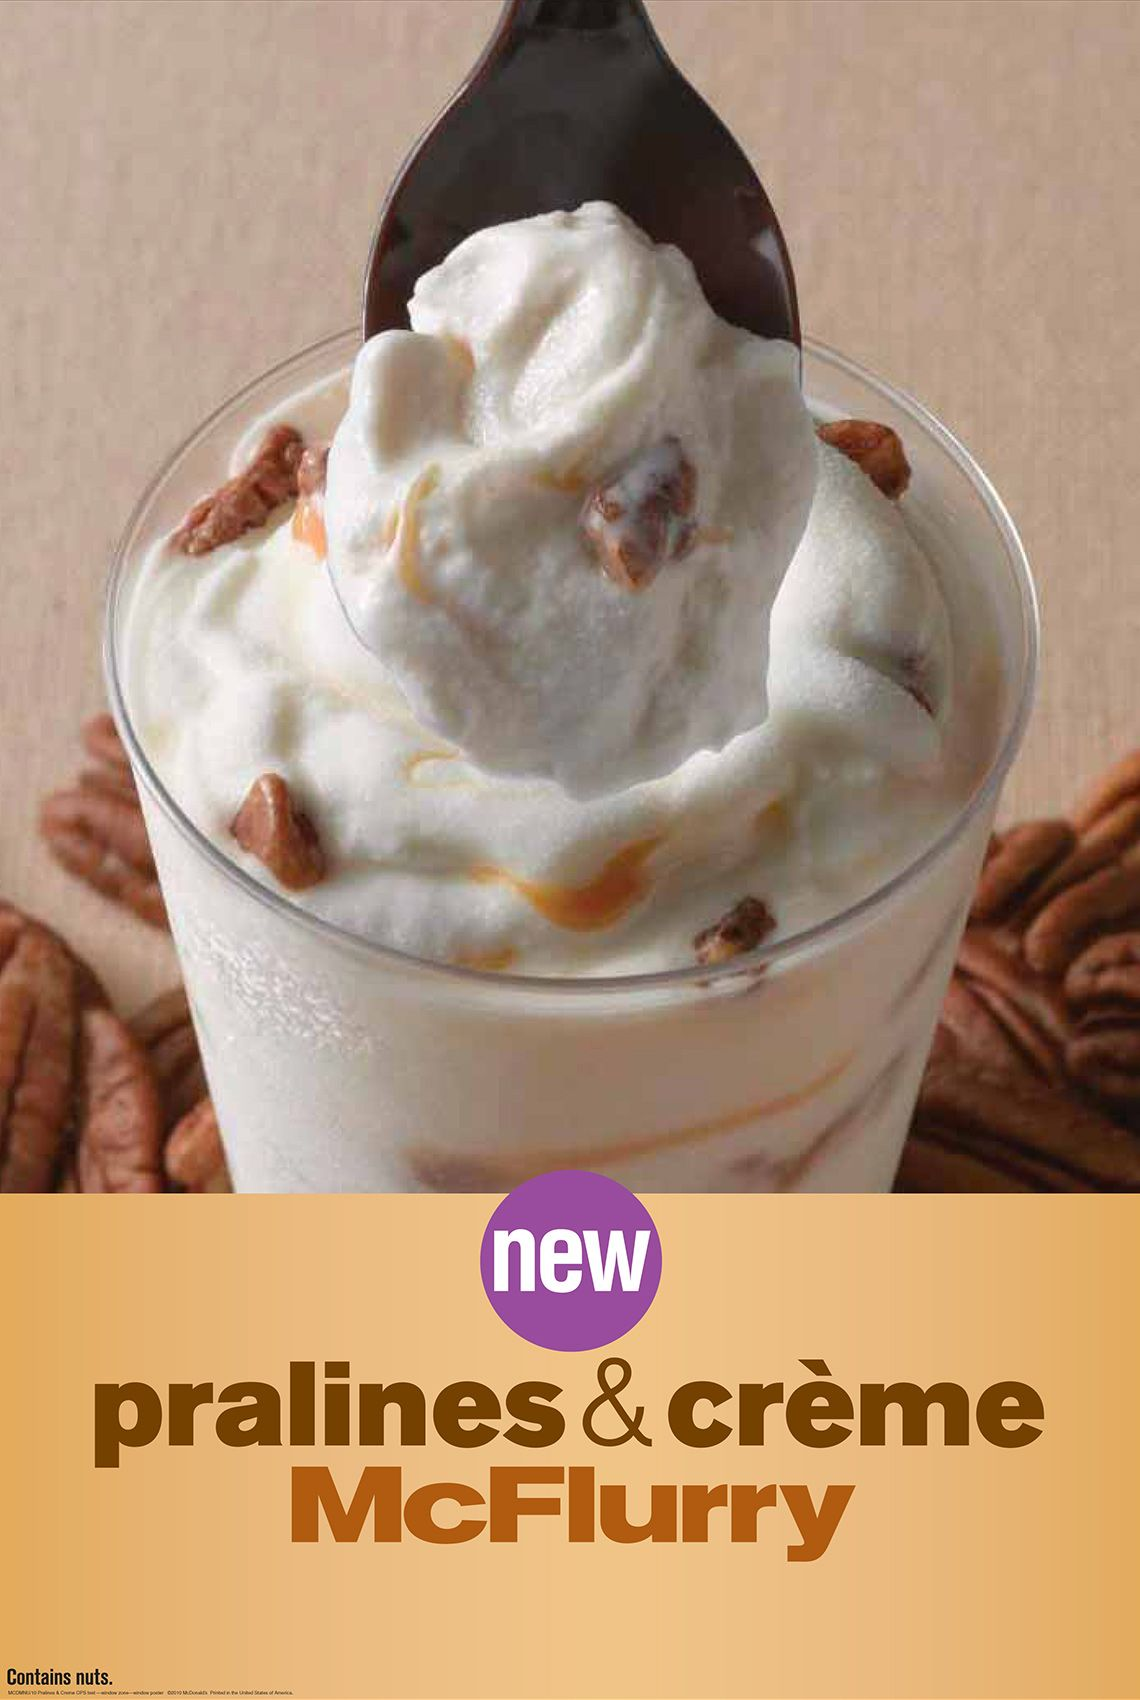 McDonalds Pralines Cream McFlurry Ad